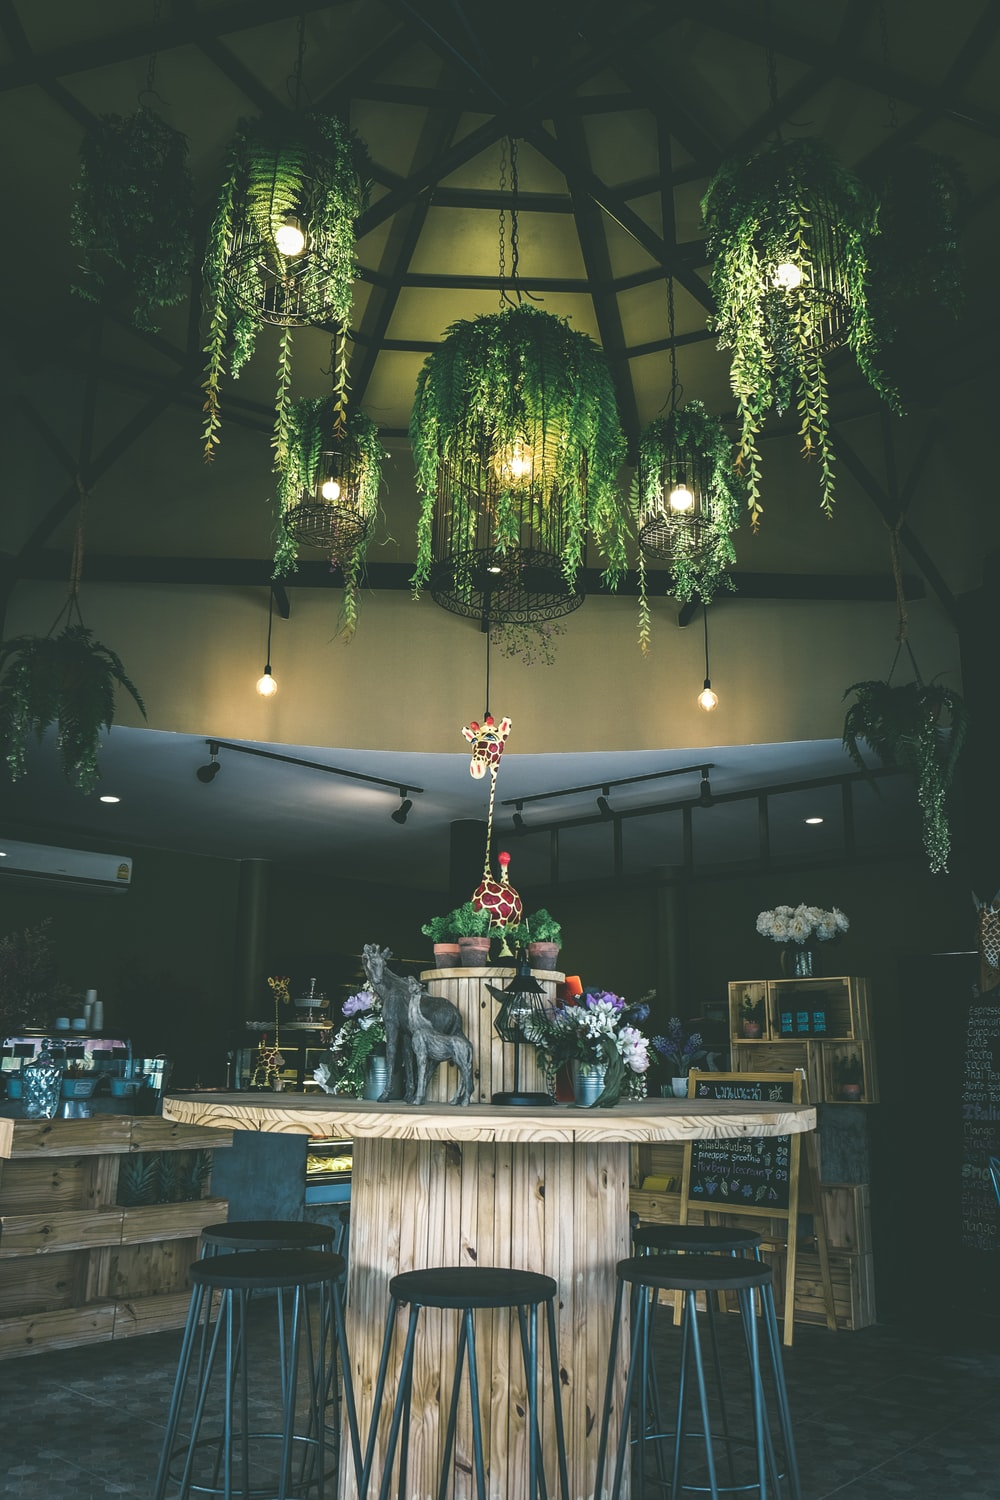 round brown wooden table surrounded by black stools under green leafed-themed pendant lamps